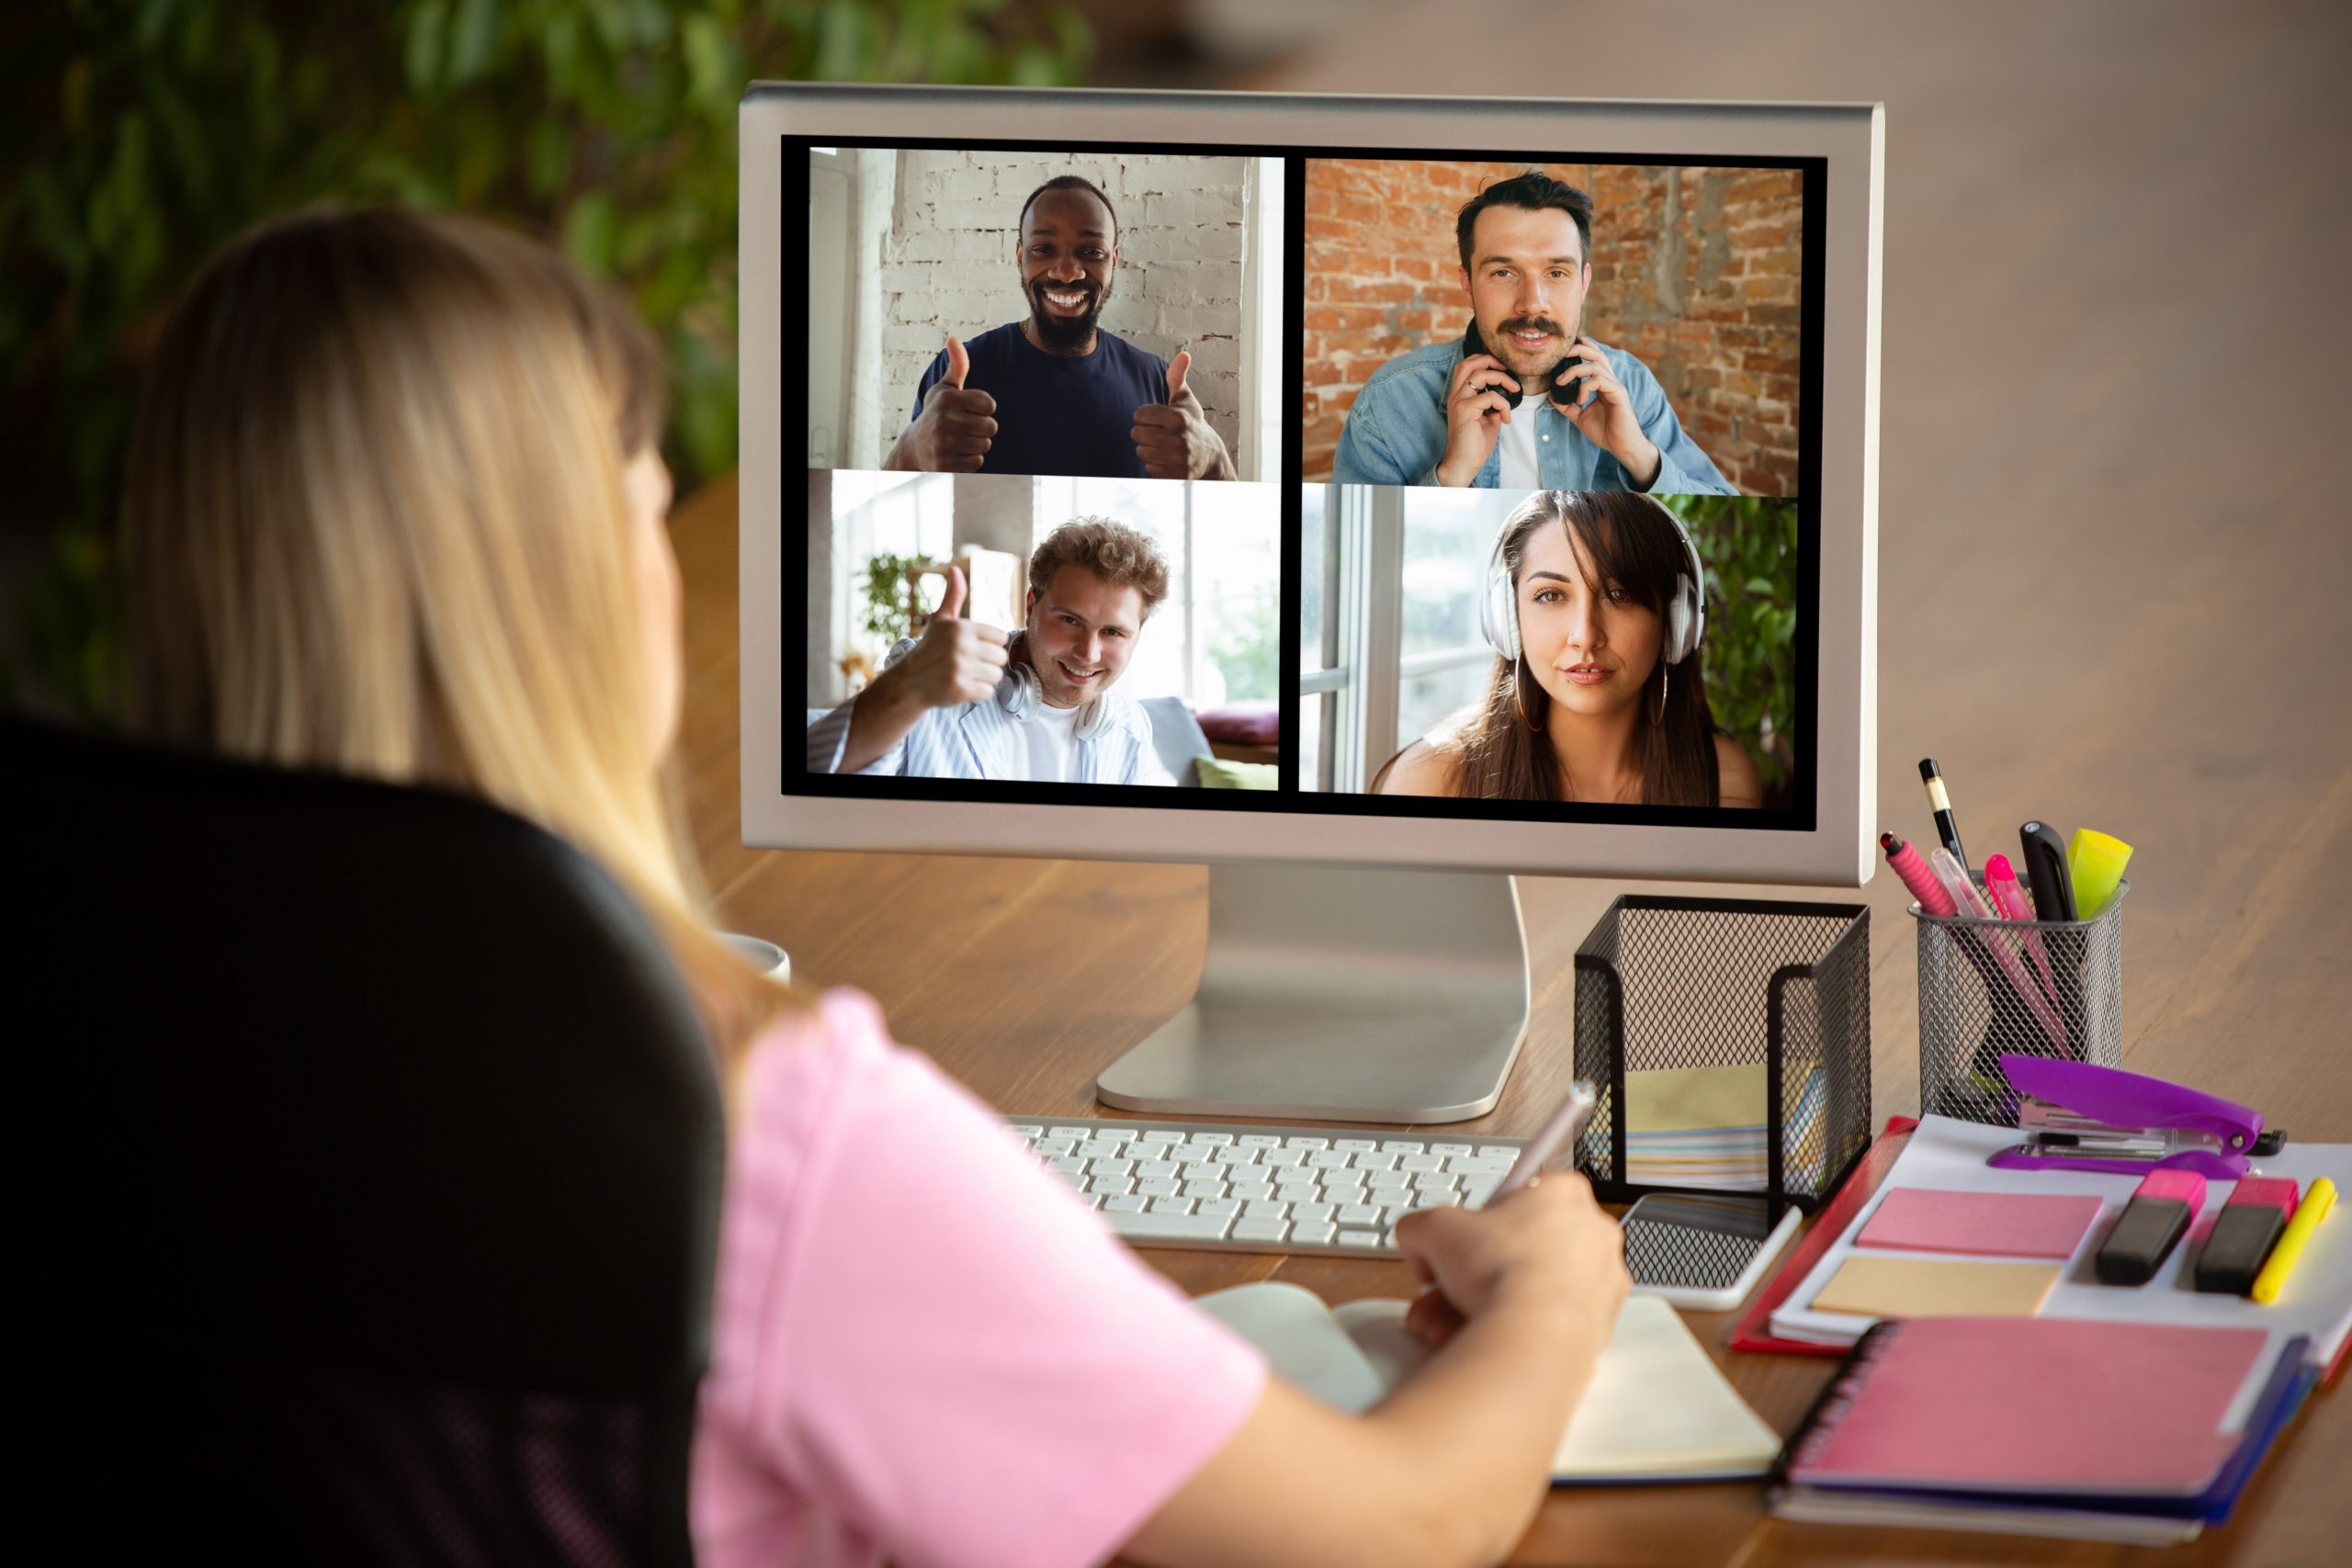 Remote Work Statistics to watch out for in 2020